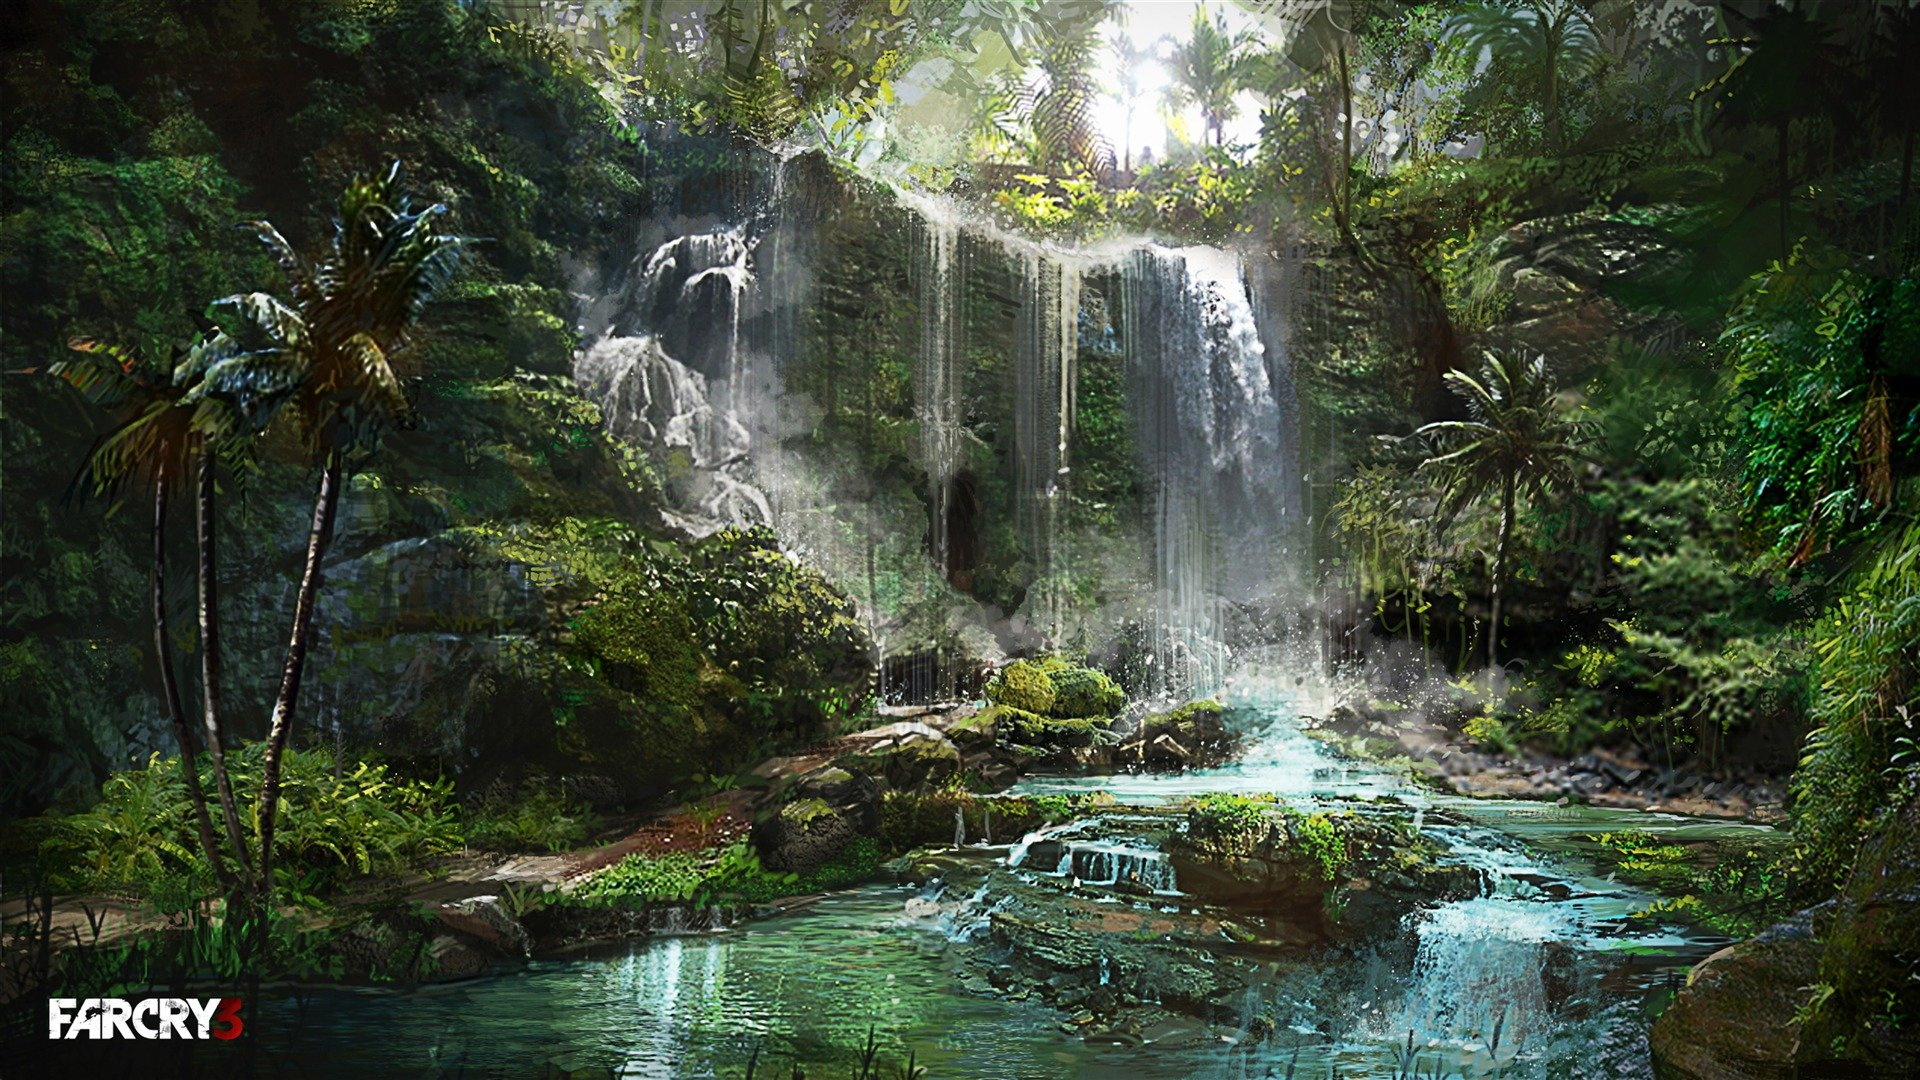 Free Download 2012 Far Cry 3 Game Hd Wallpaper 57 Hd 1080p